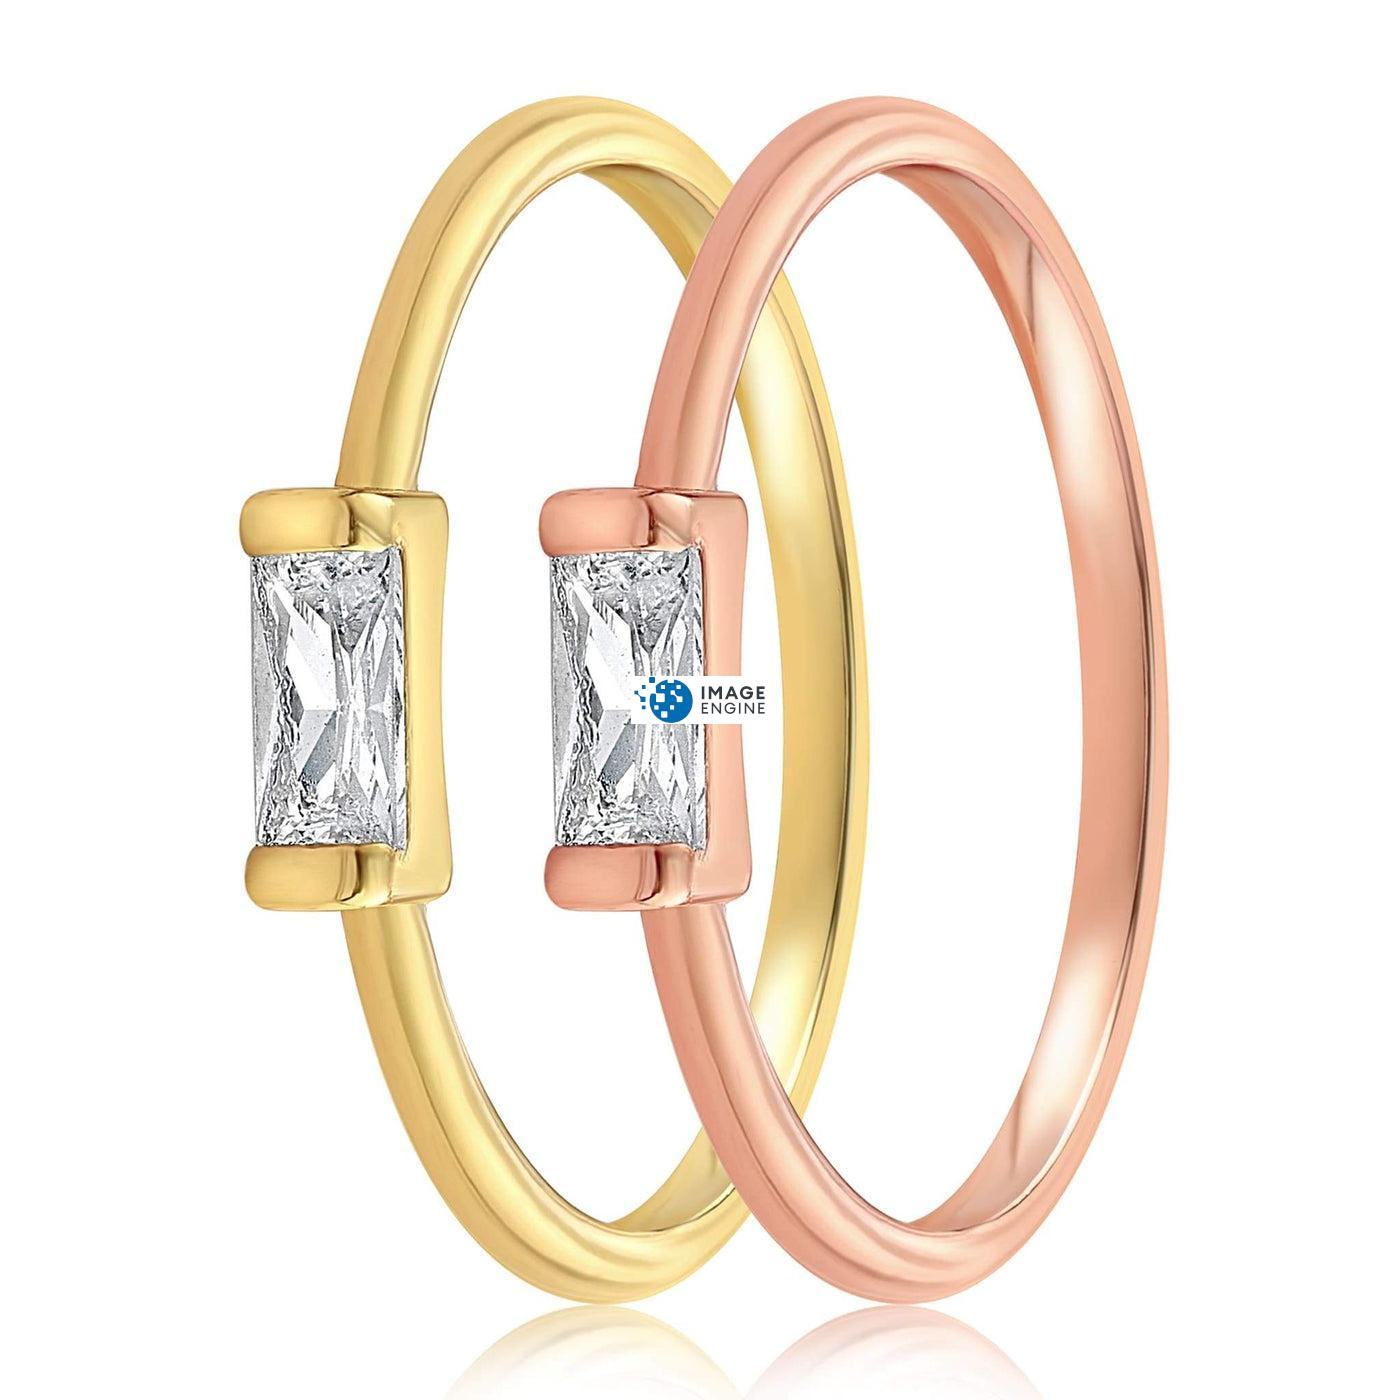 Moonie Glass Geometric Ring - Side by Side - 18K Yellow Gold Vermeil and 18K Rose Gold Vermeil